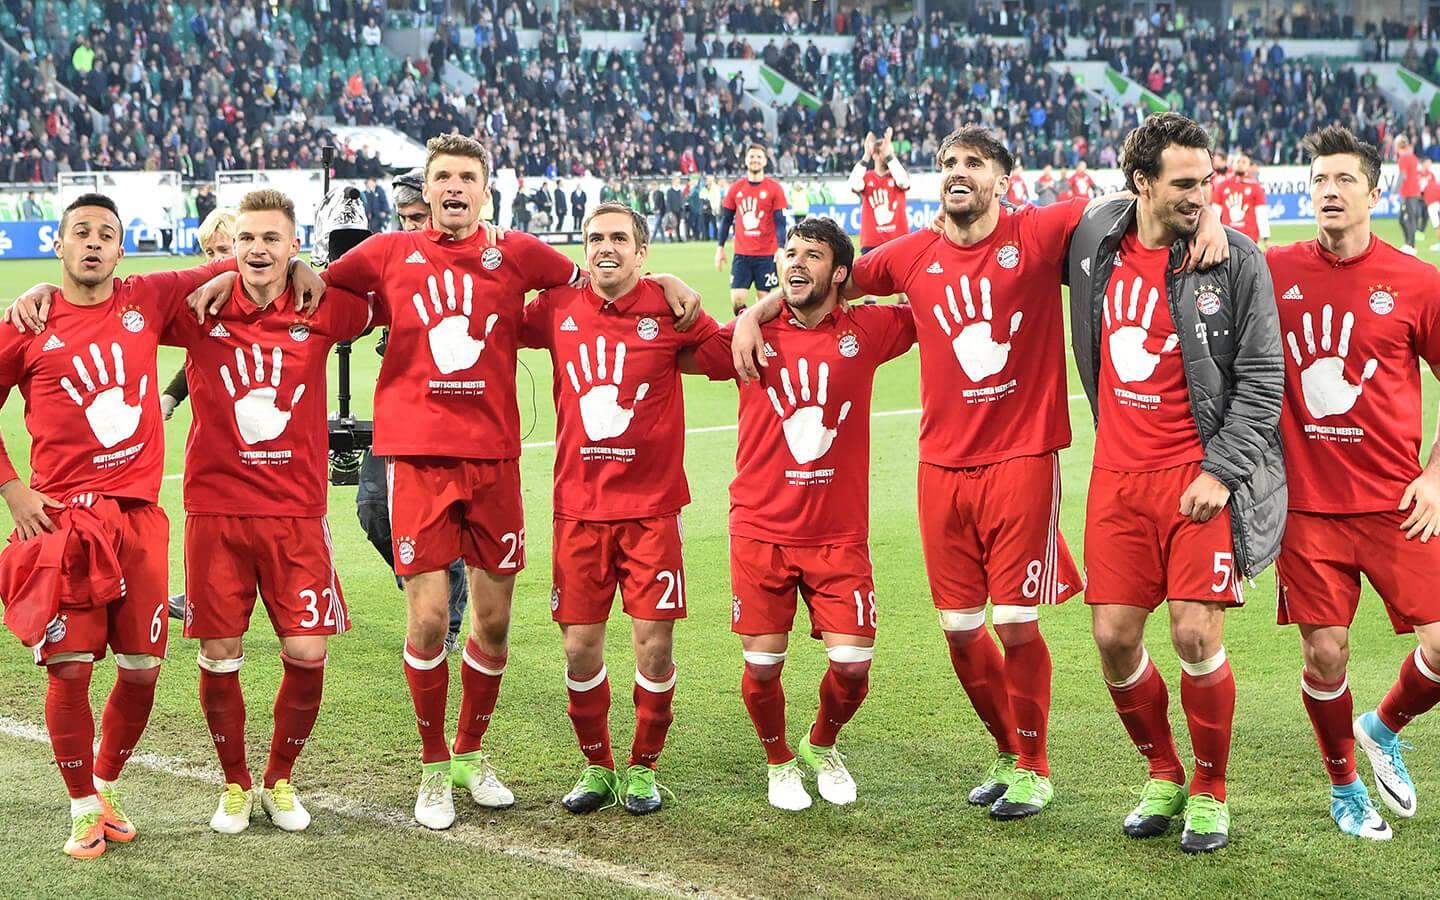 Bayern Munich players celebrate their 2017/18 Bundesliga title